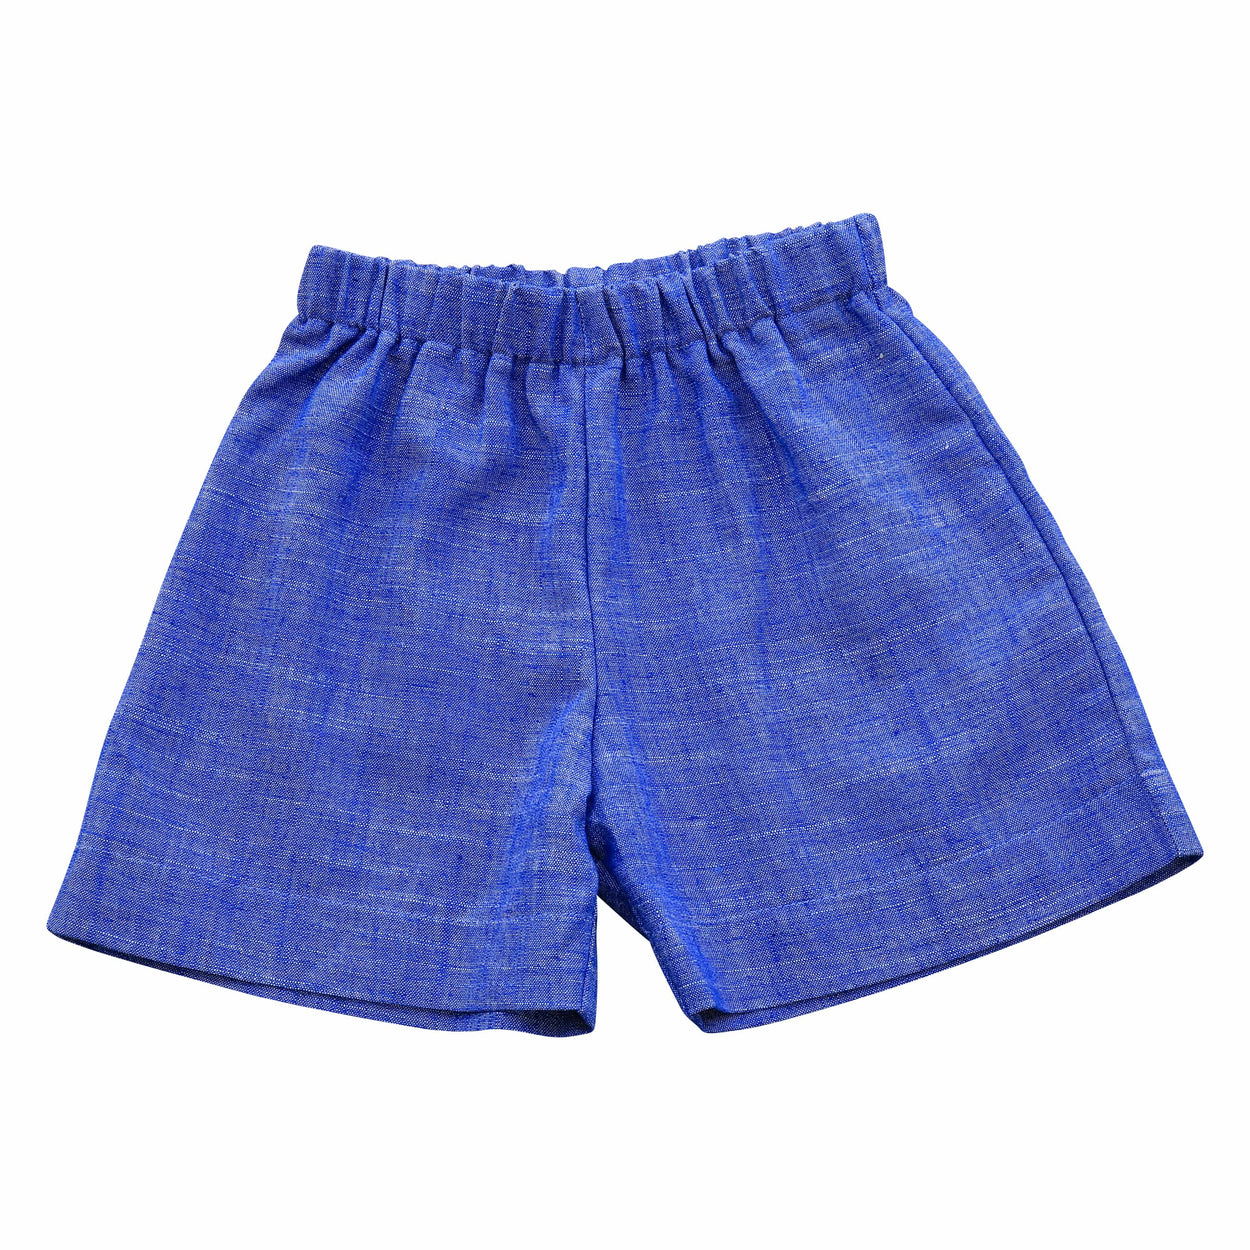 infant and boys' jd pull on shorts blue chambray